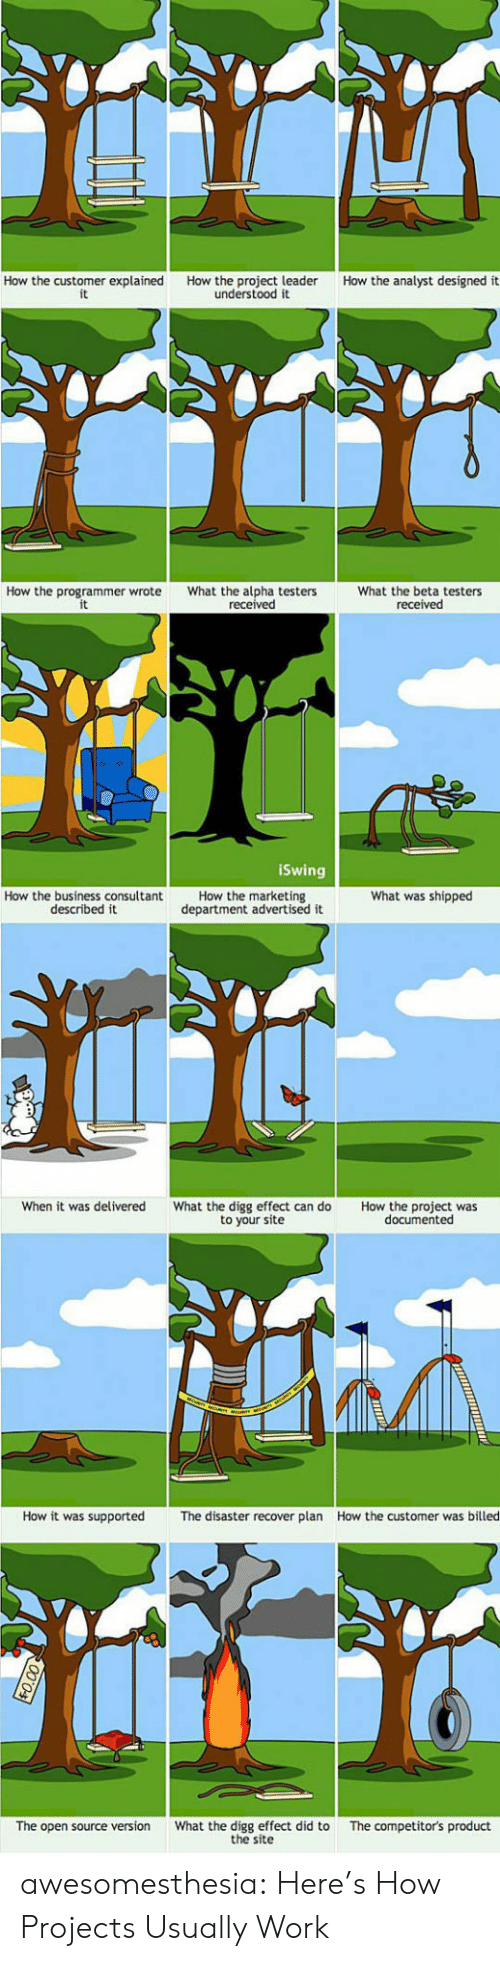 Tumblr, Work, and Blog: How the customer explained  it  How the analyst designed it  How the project leader  understood it  How the programmer wrote  What the alpha testers  received  What the beta testers  received  iSwing  How the marketing  department advertised it  What was shipped  How the business consultant  described it  When it was delivered  What the digg effect can do  to your site  How the project was  documented  How it was supported  How the customer was billed  The disaster recover plan  What the digg effect did to  the site  The competitor's product  The open source version awesomesthesia:  Here's How Projects Usually Work